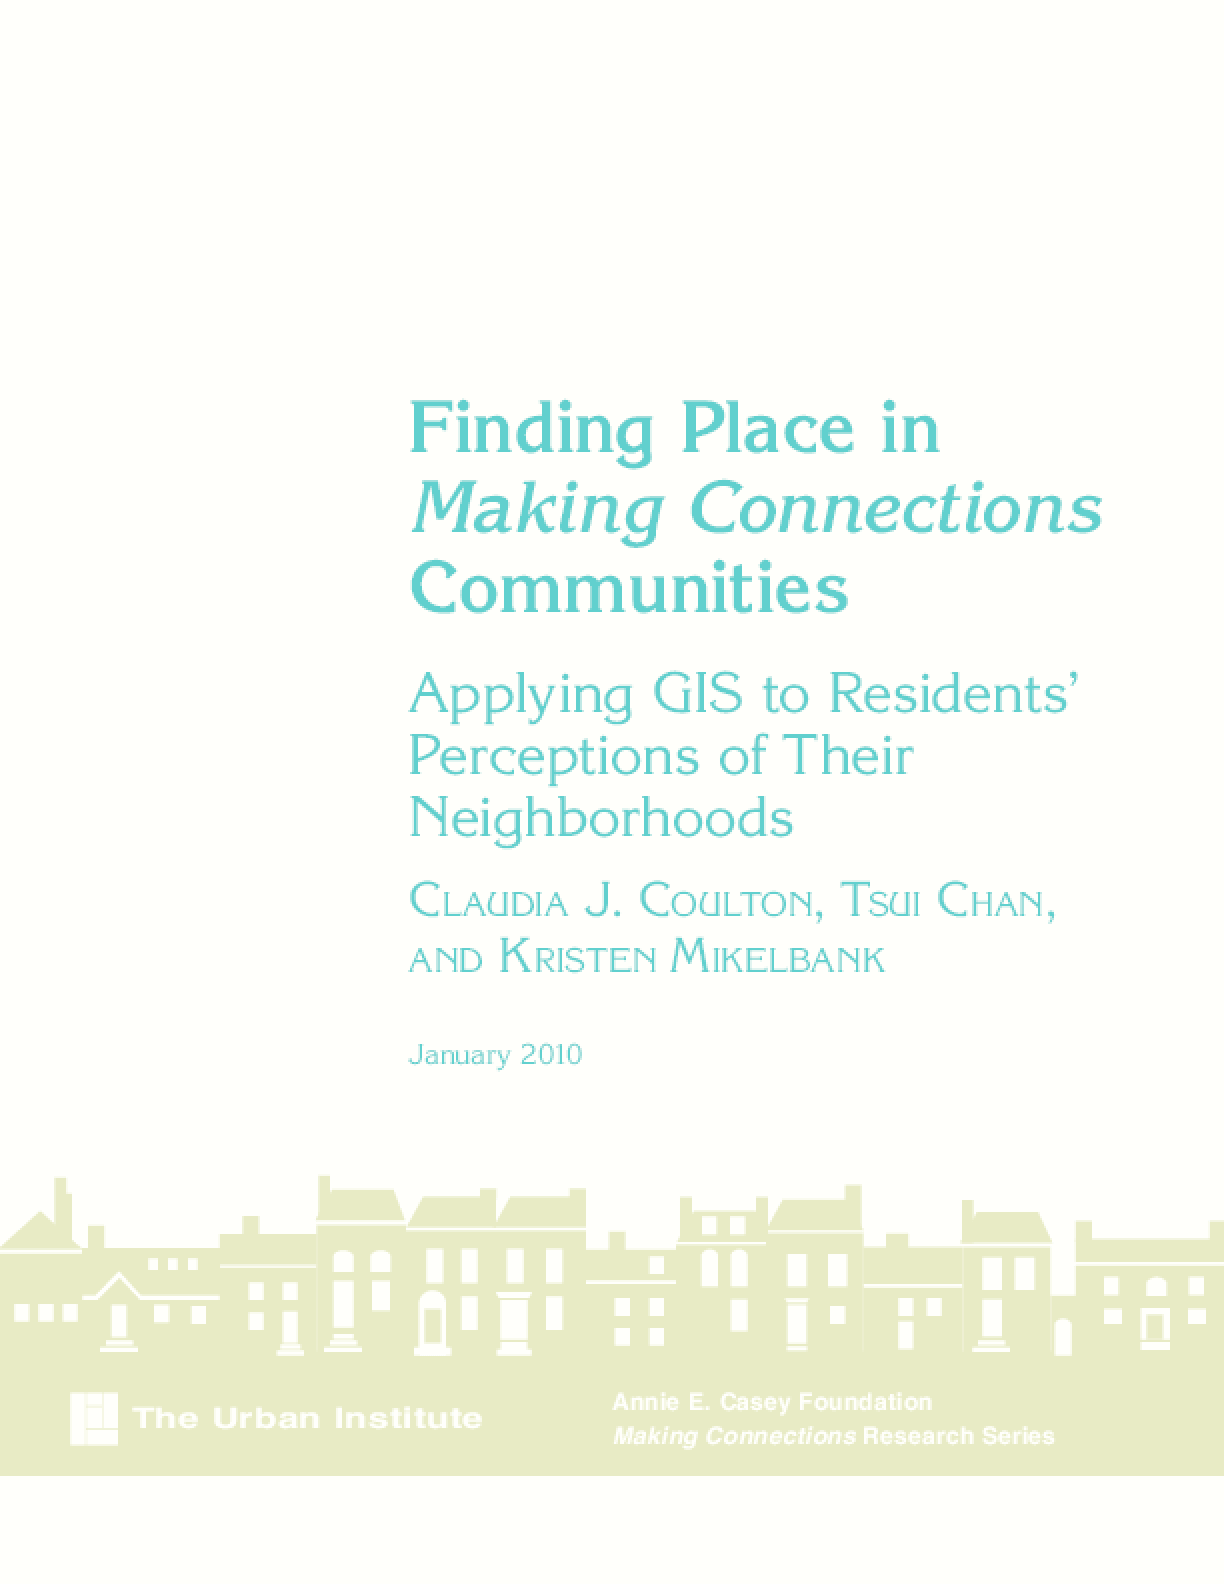 Finding Place in Making Connections Communities: Applying GIS to Residents' Perceptions of Their Neighborhoods